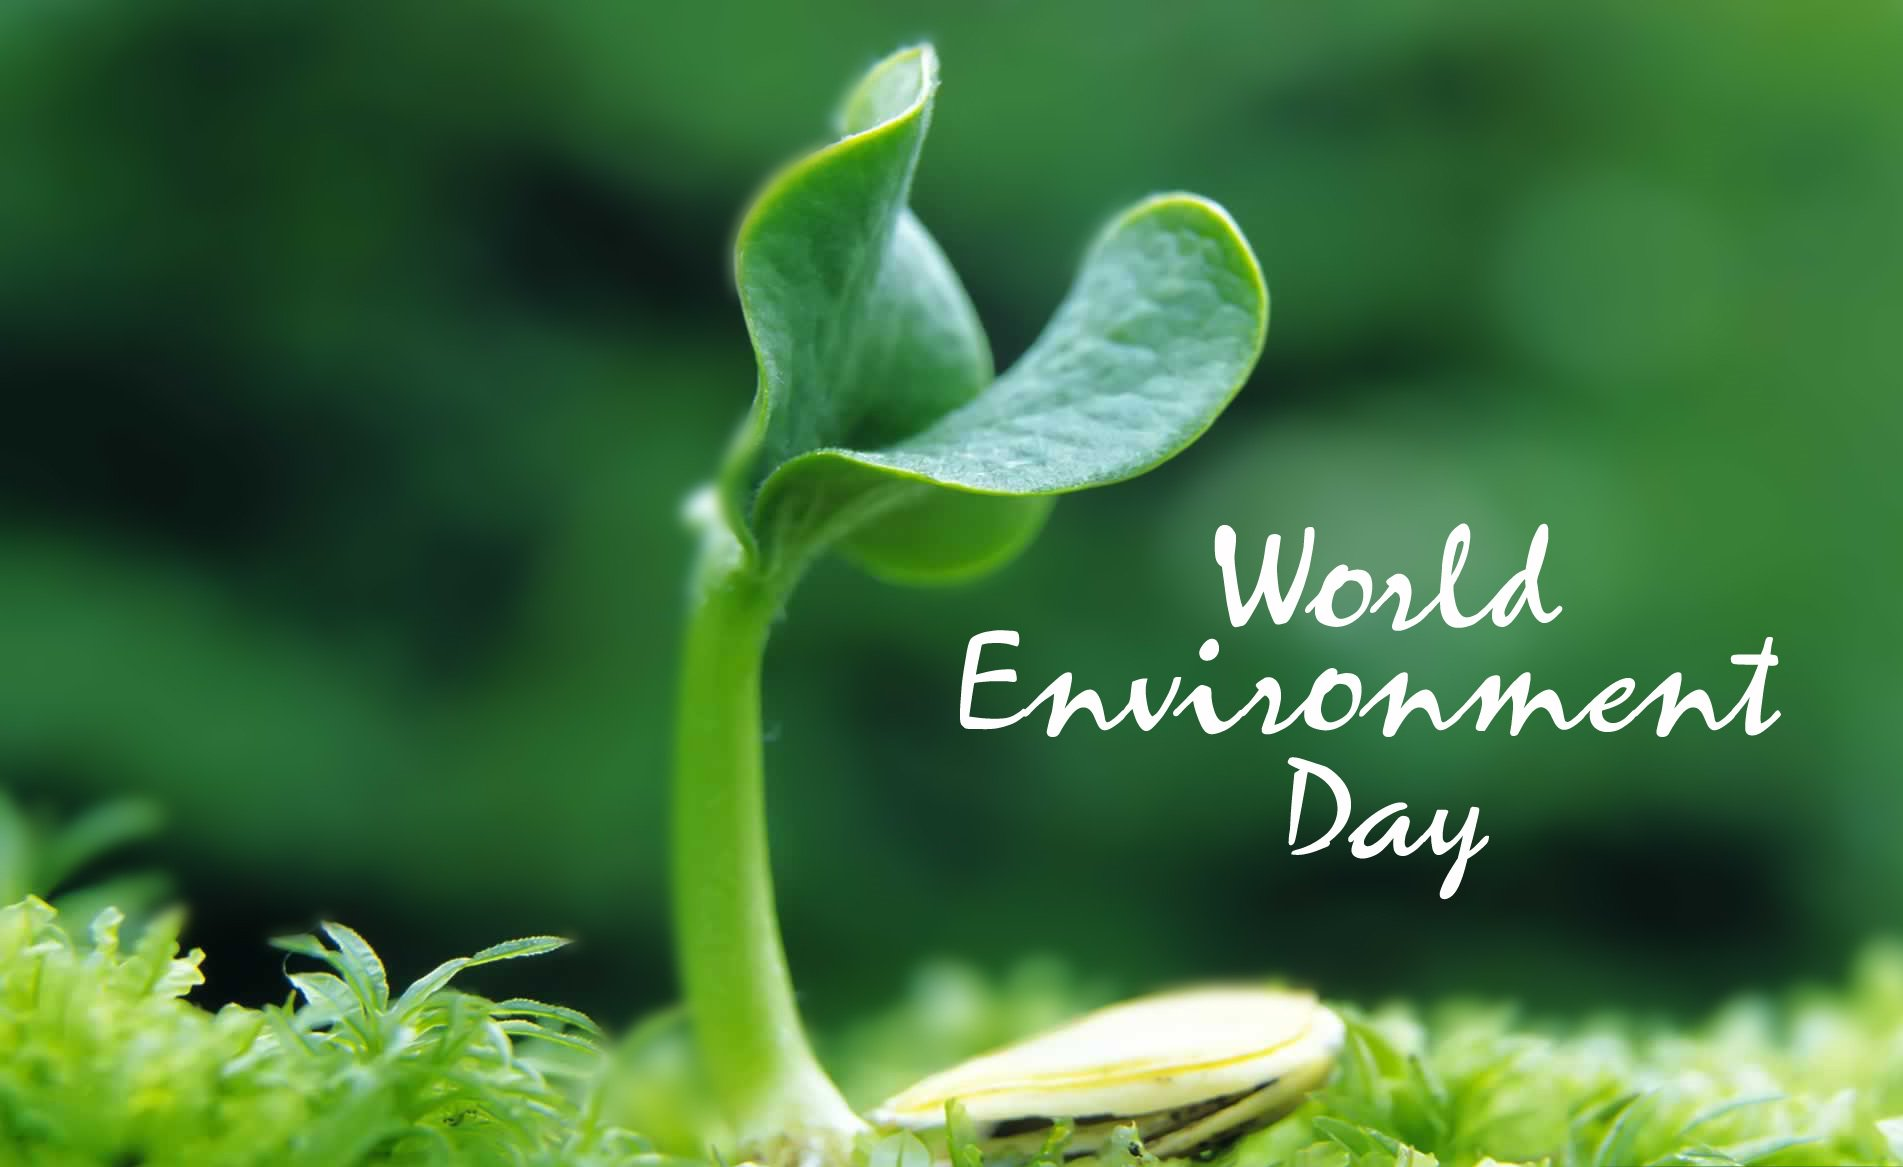 world environment day images.jpg